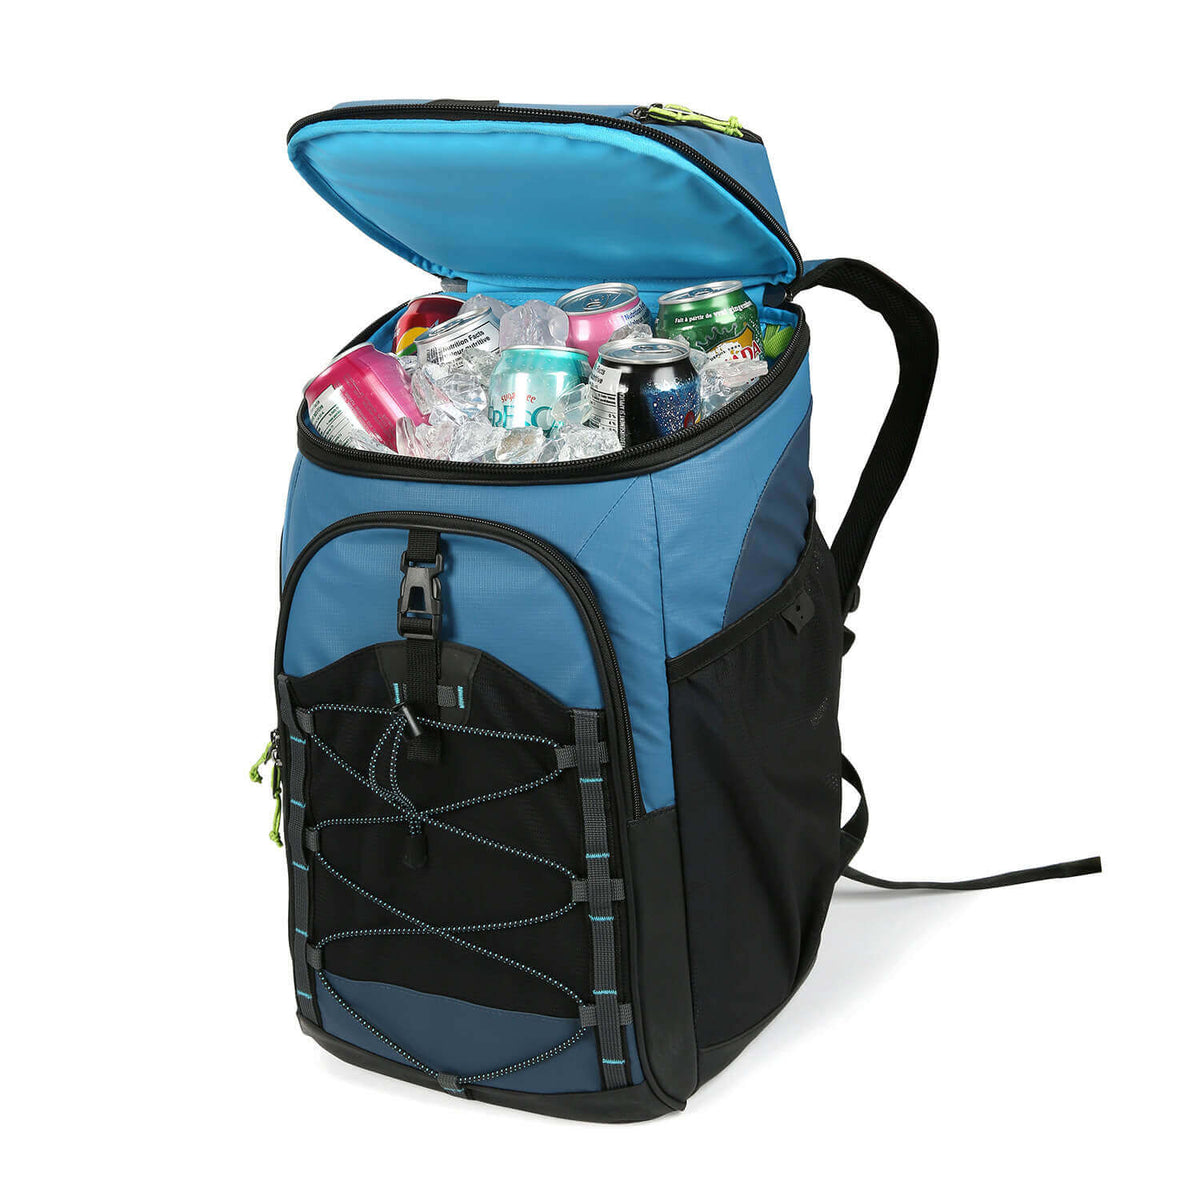 30 Can Titan Guide Series Backpack Cooler front top open